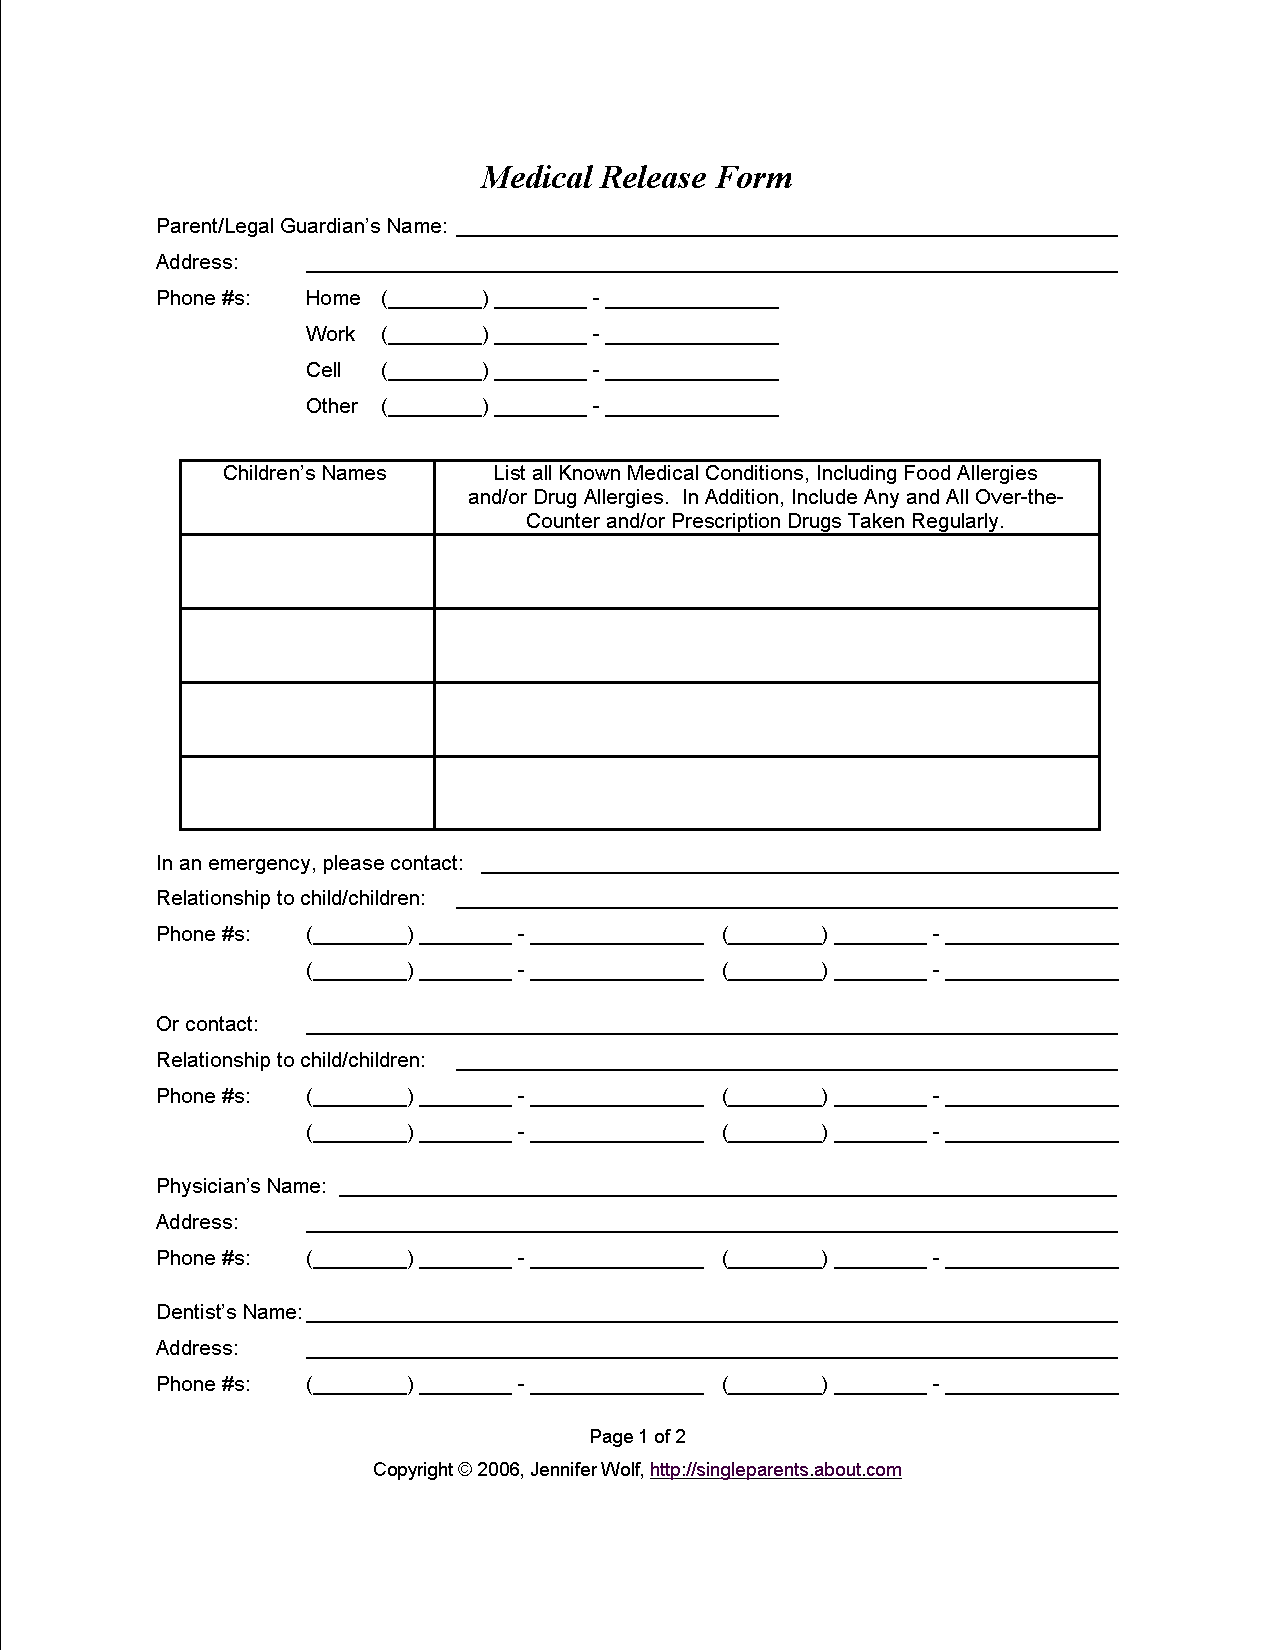 Tactueux image with free printable child medical consent form